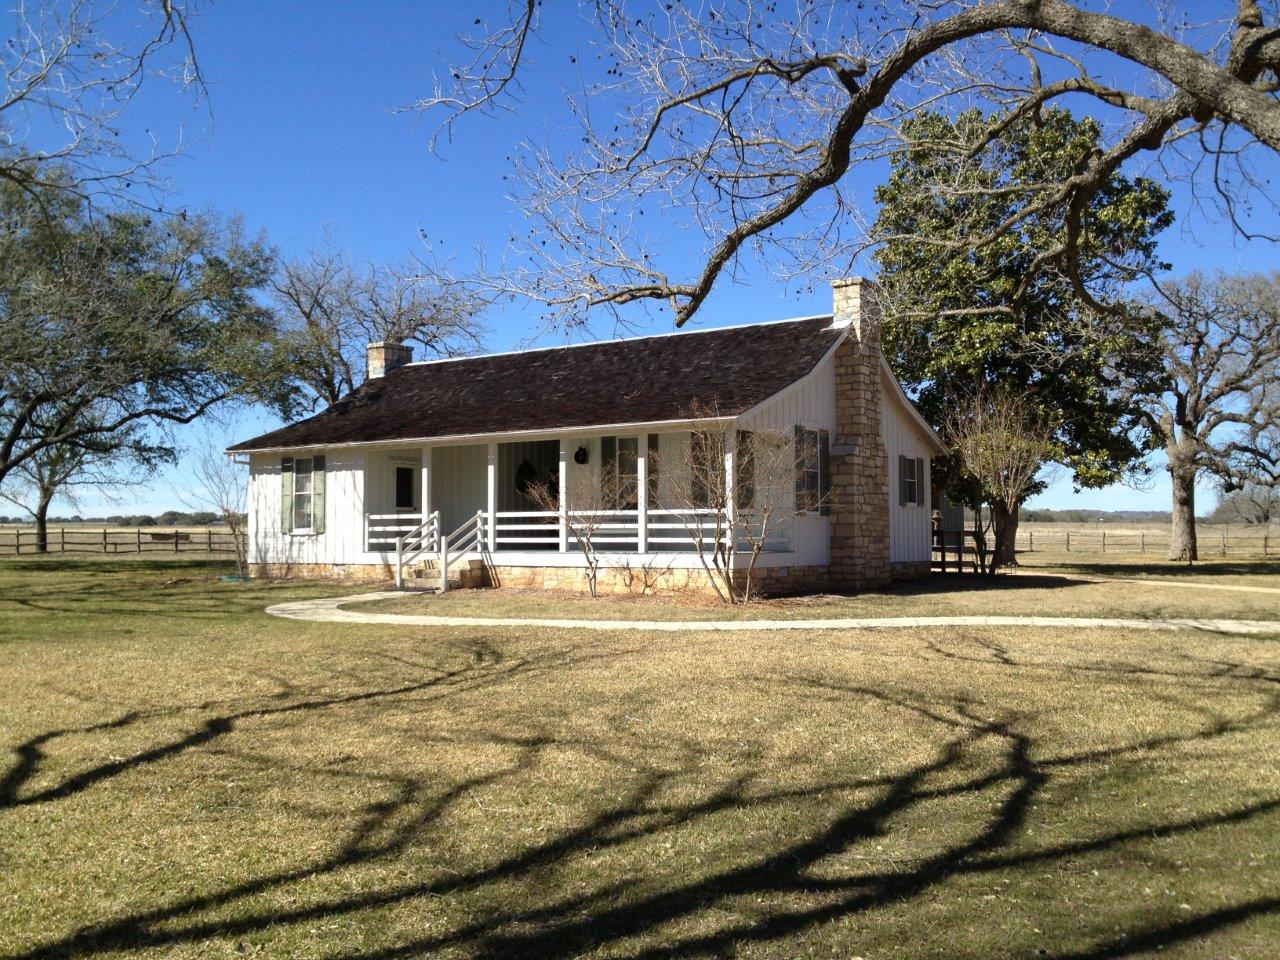 Lyndon Johnson birthplace